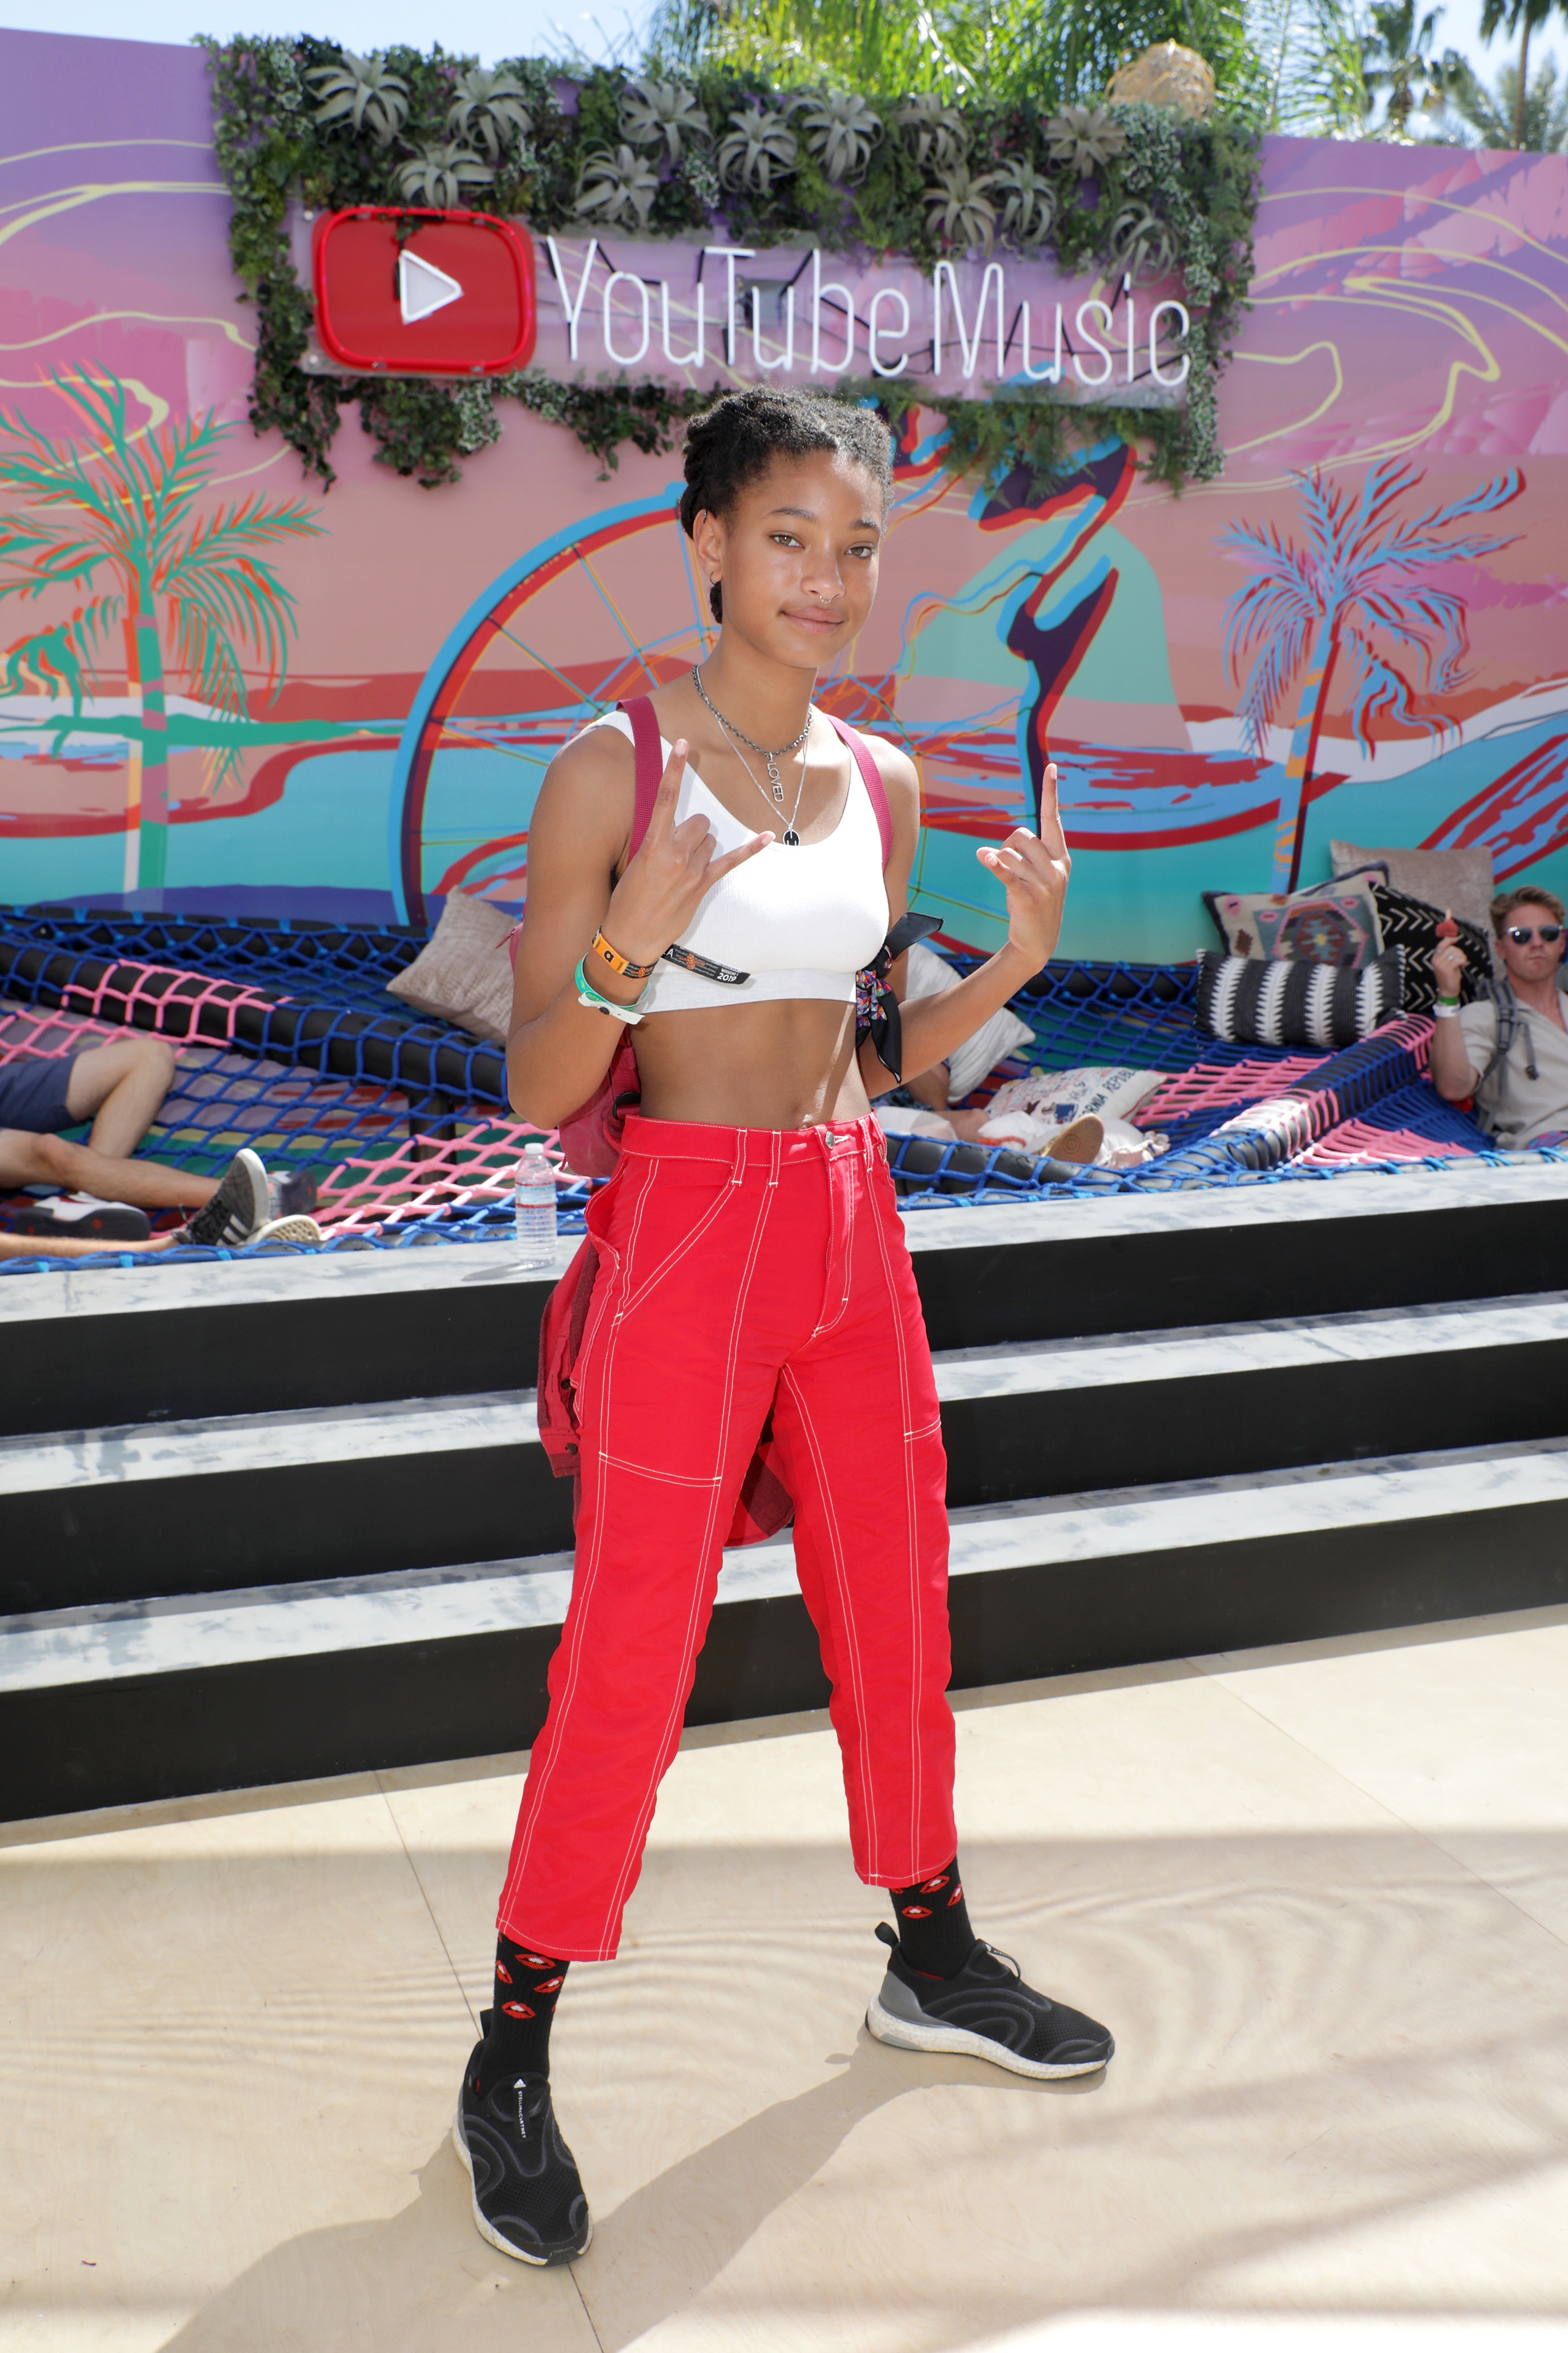 Willow Smith visits the YouTube Music Artist Lounge at Coachella in Indio, California, on April 13, 2019.